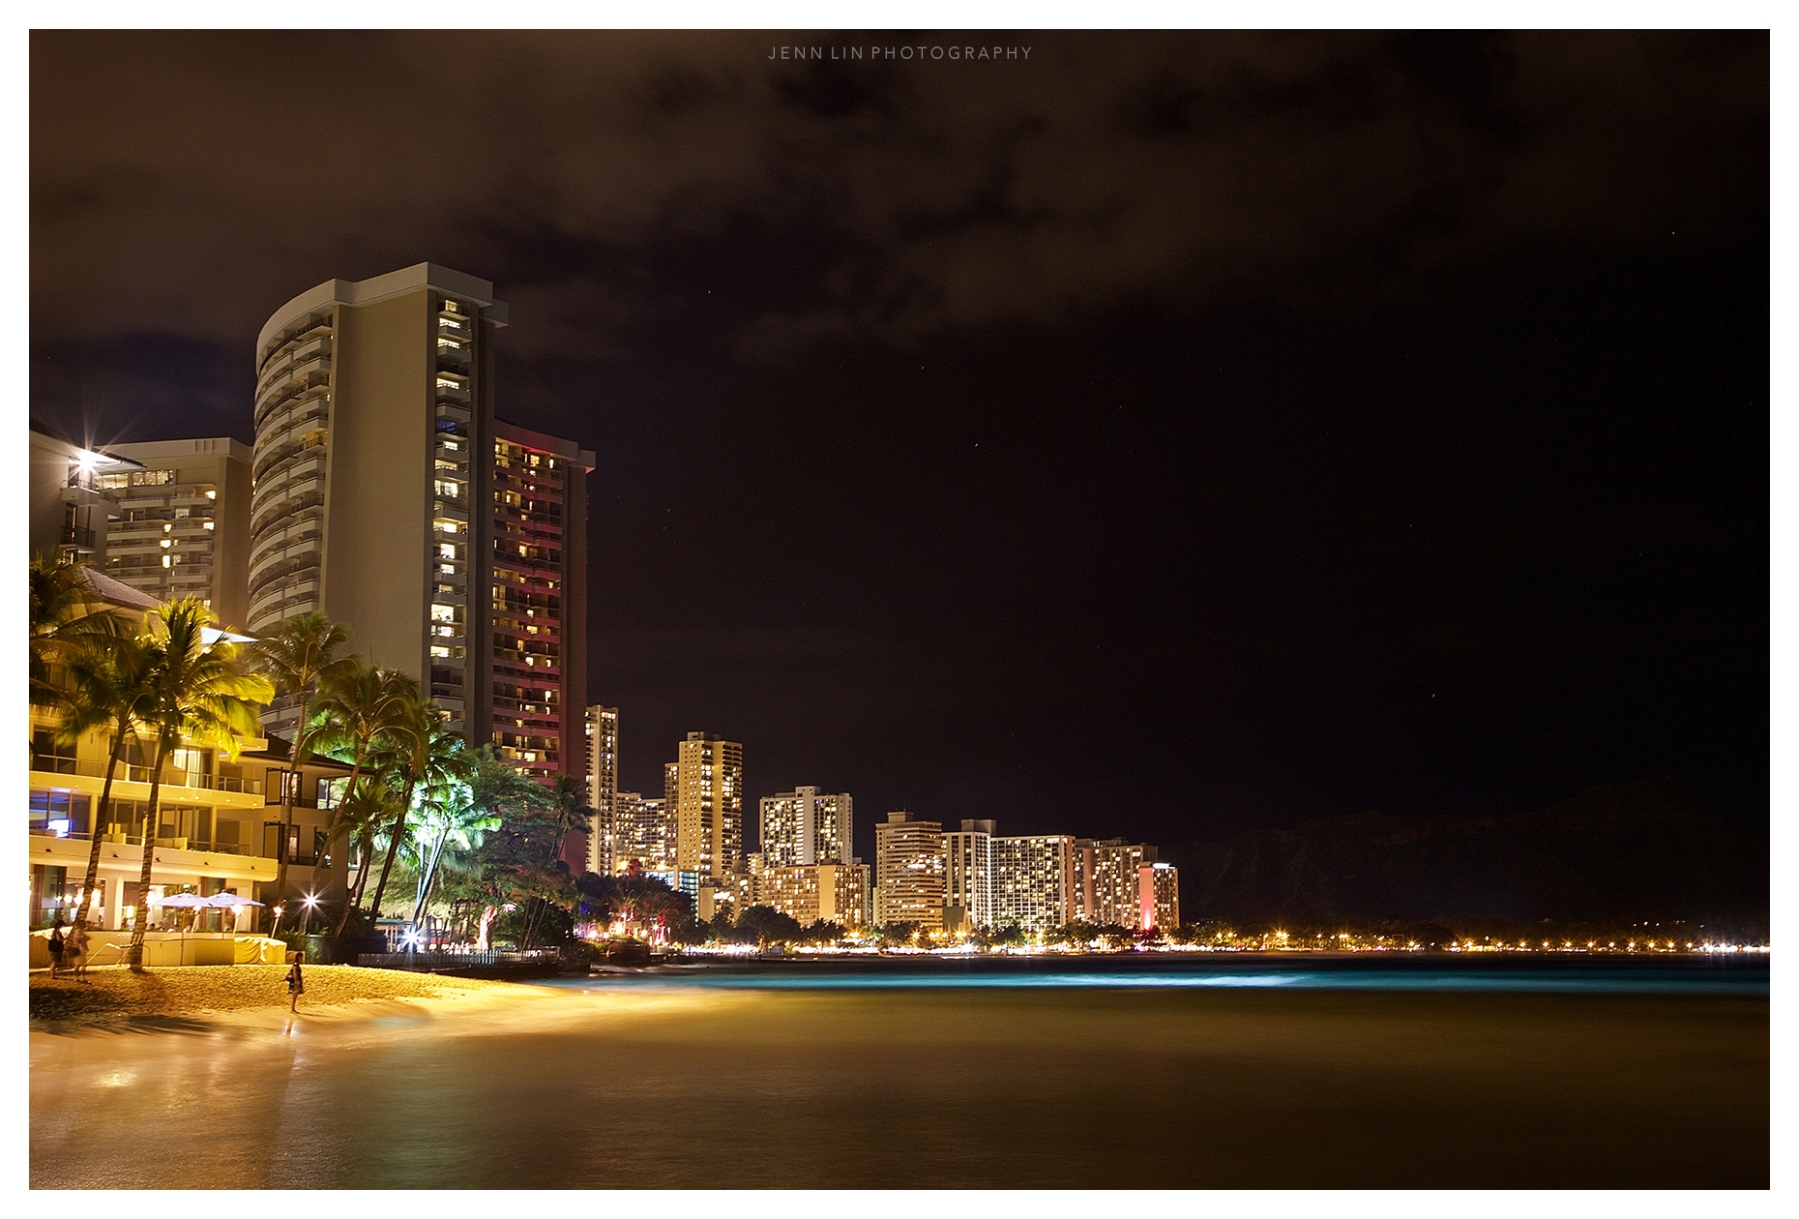 Long exposure at Waikiki Beach in Honolulu, Hawaii